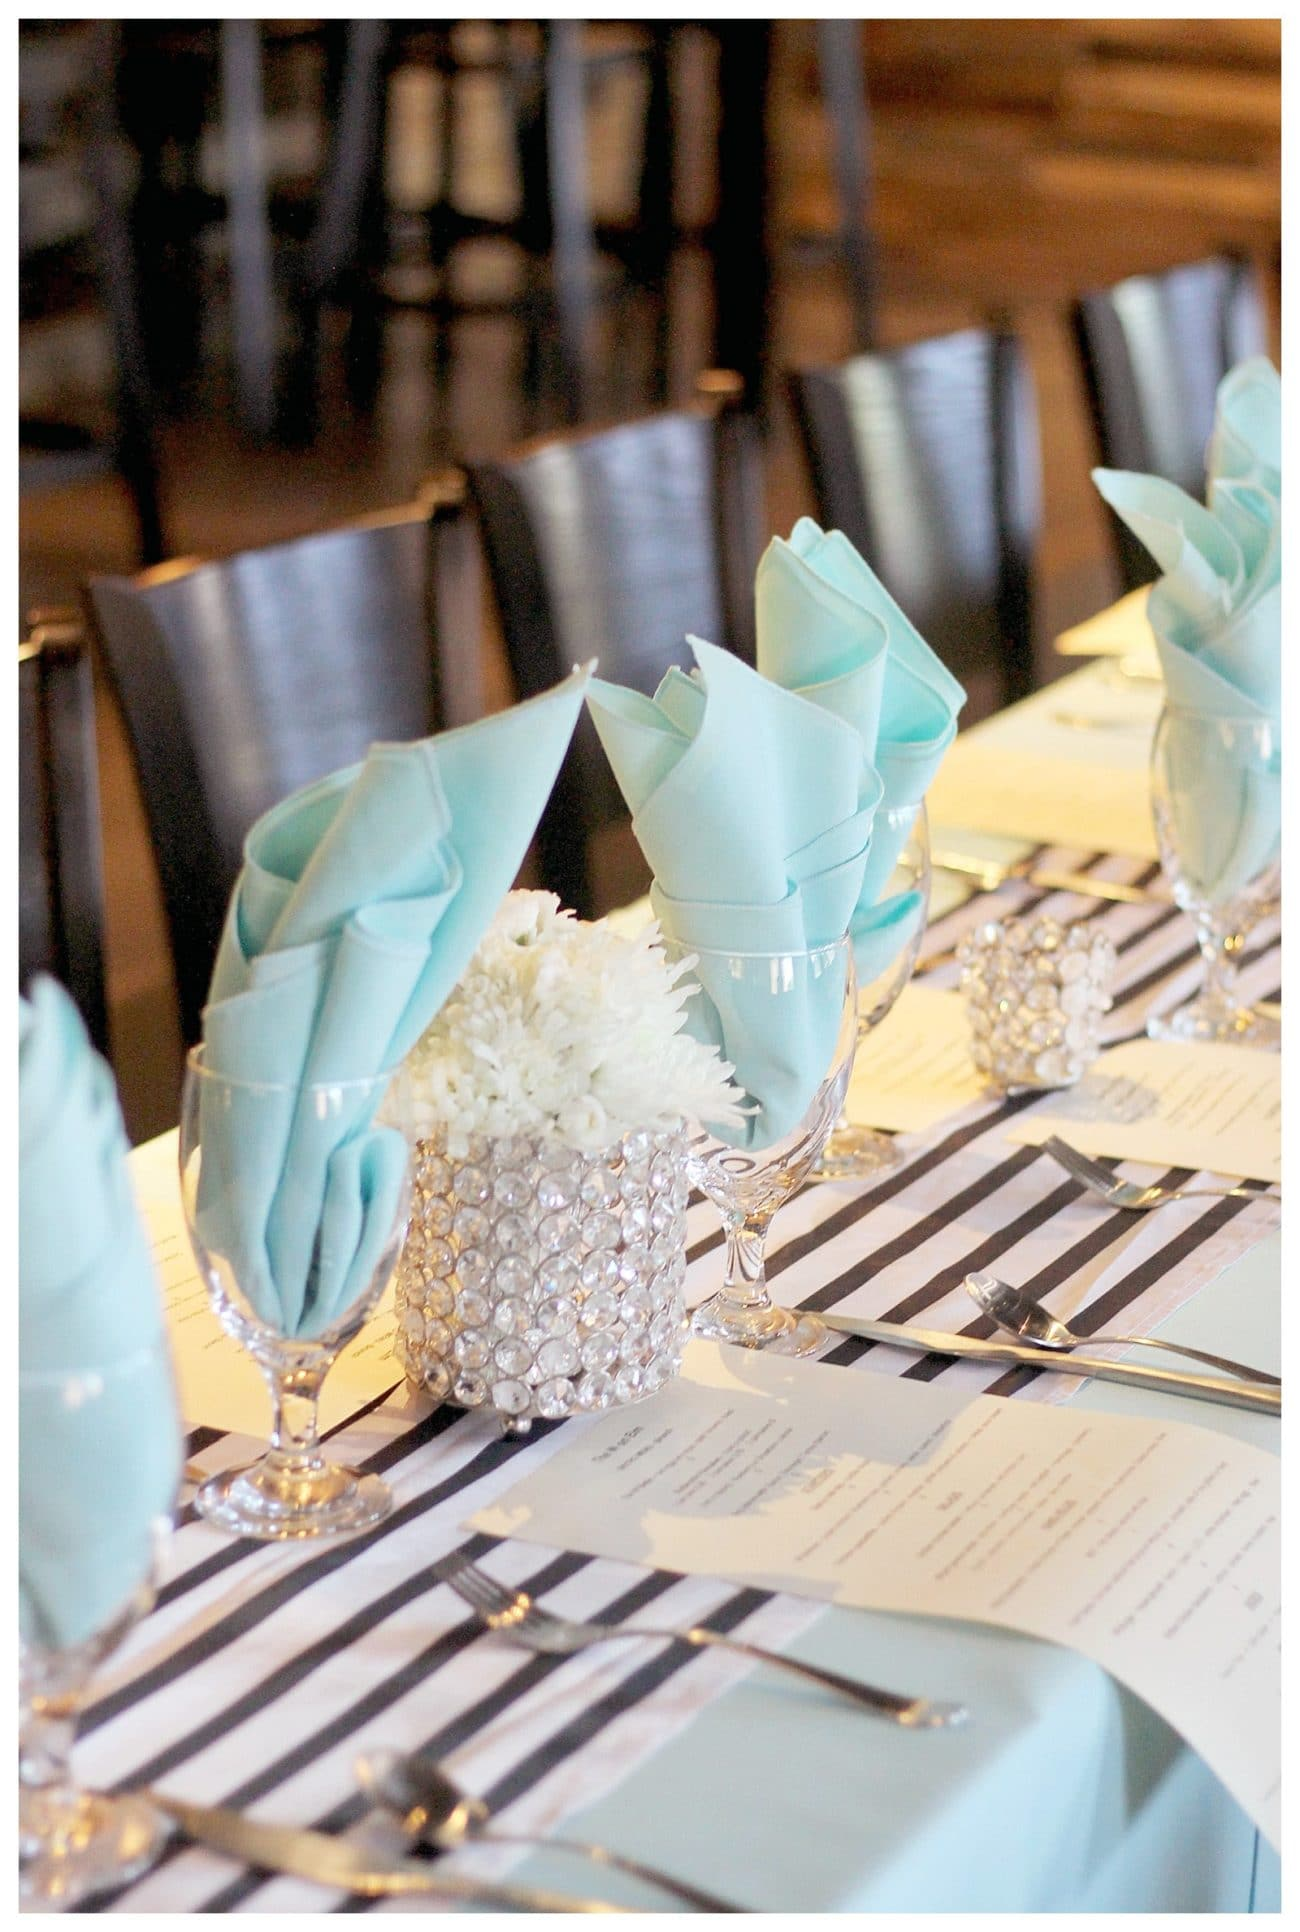 Plan a Pinterest-Perfect Party WITHOUT Losing Your Mind {Organizing in Style}